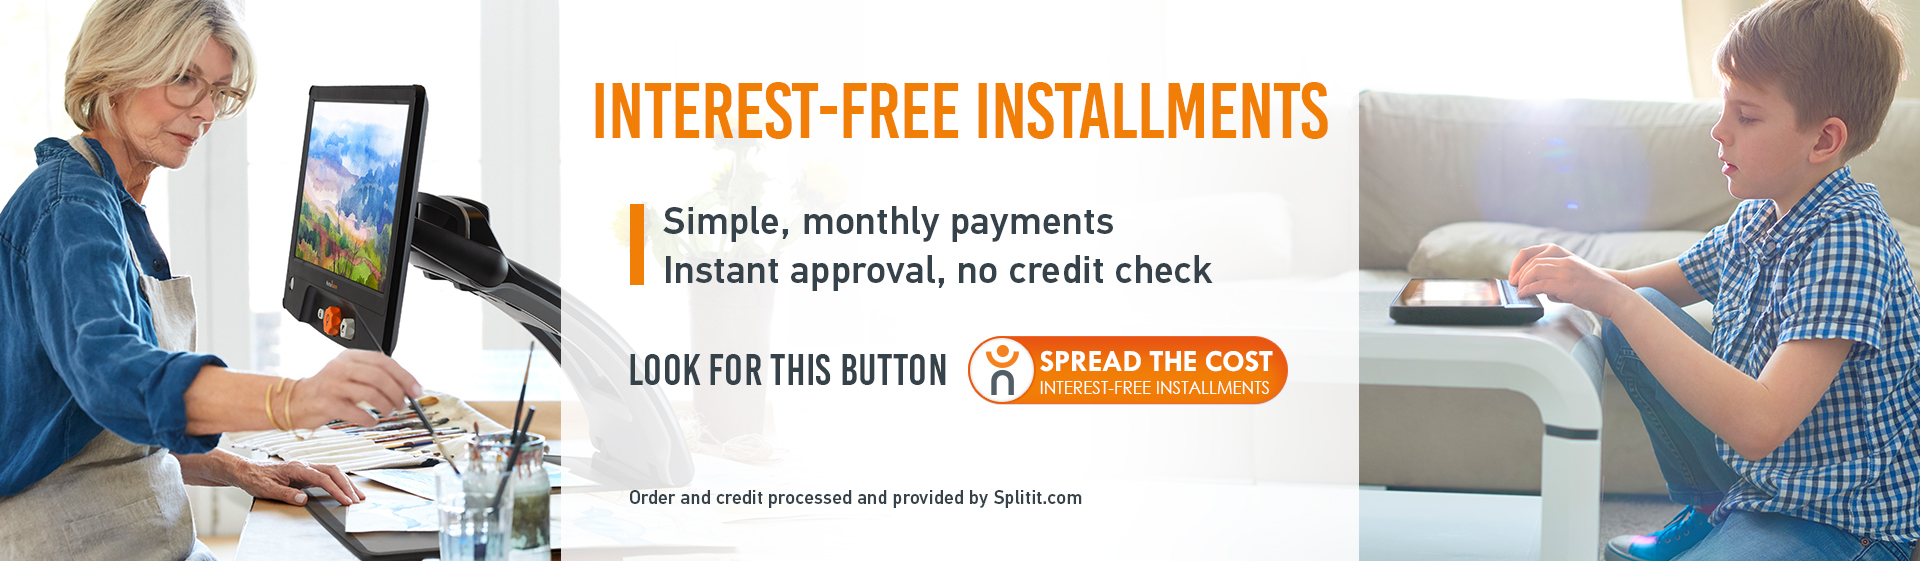 Spread the cost of your shopping completely - Interest-free - Simple, Monthly Payments, Instant approval, no credit check